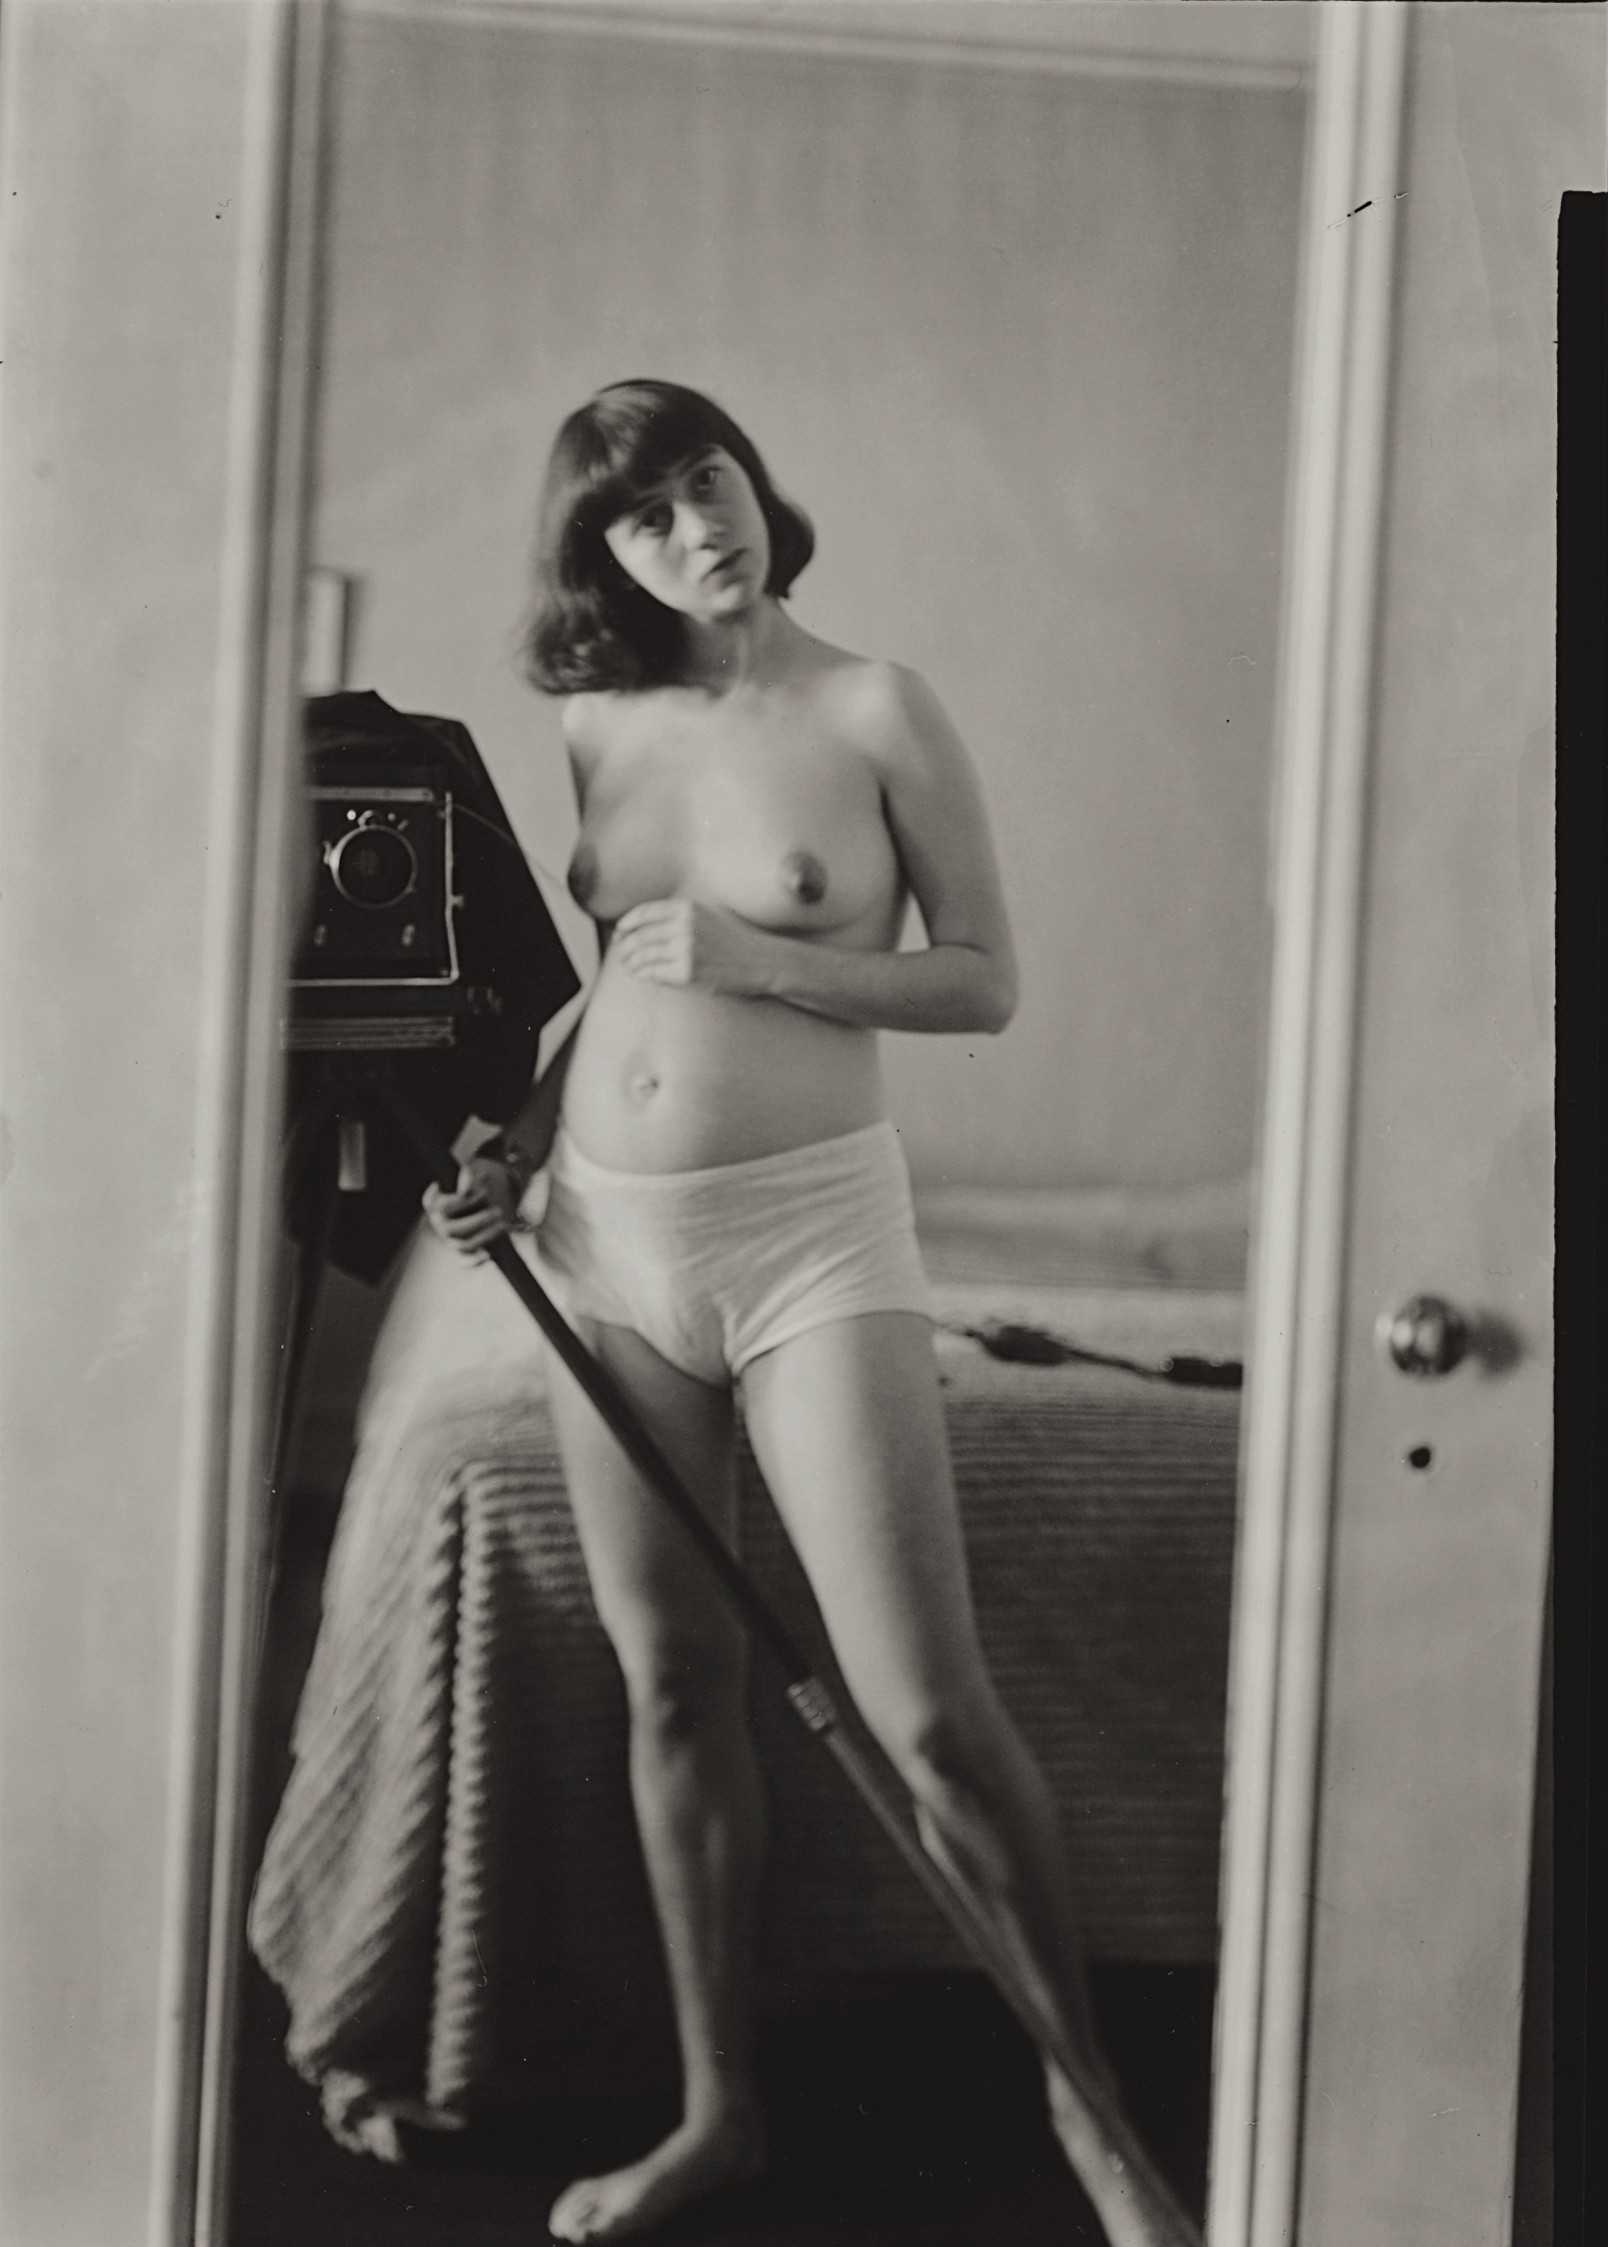 diane arbus self portrait